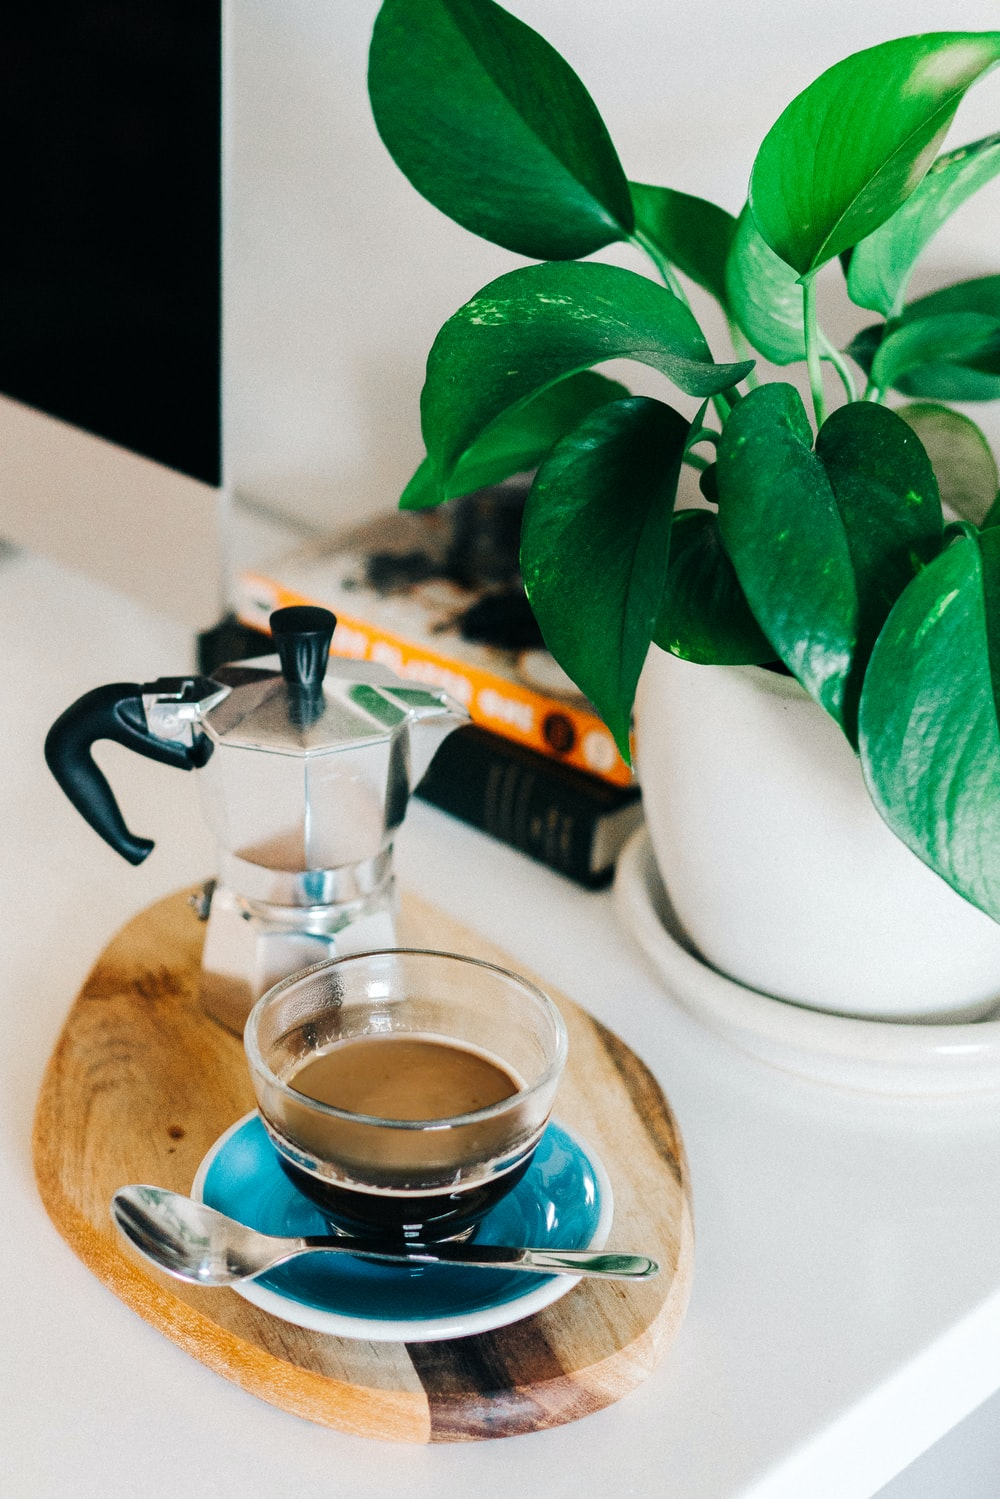 teacup filled with coffee beside moka pot